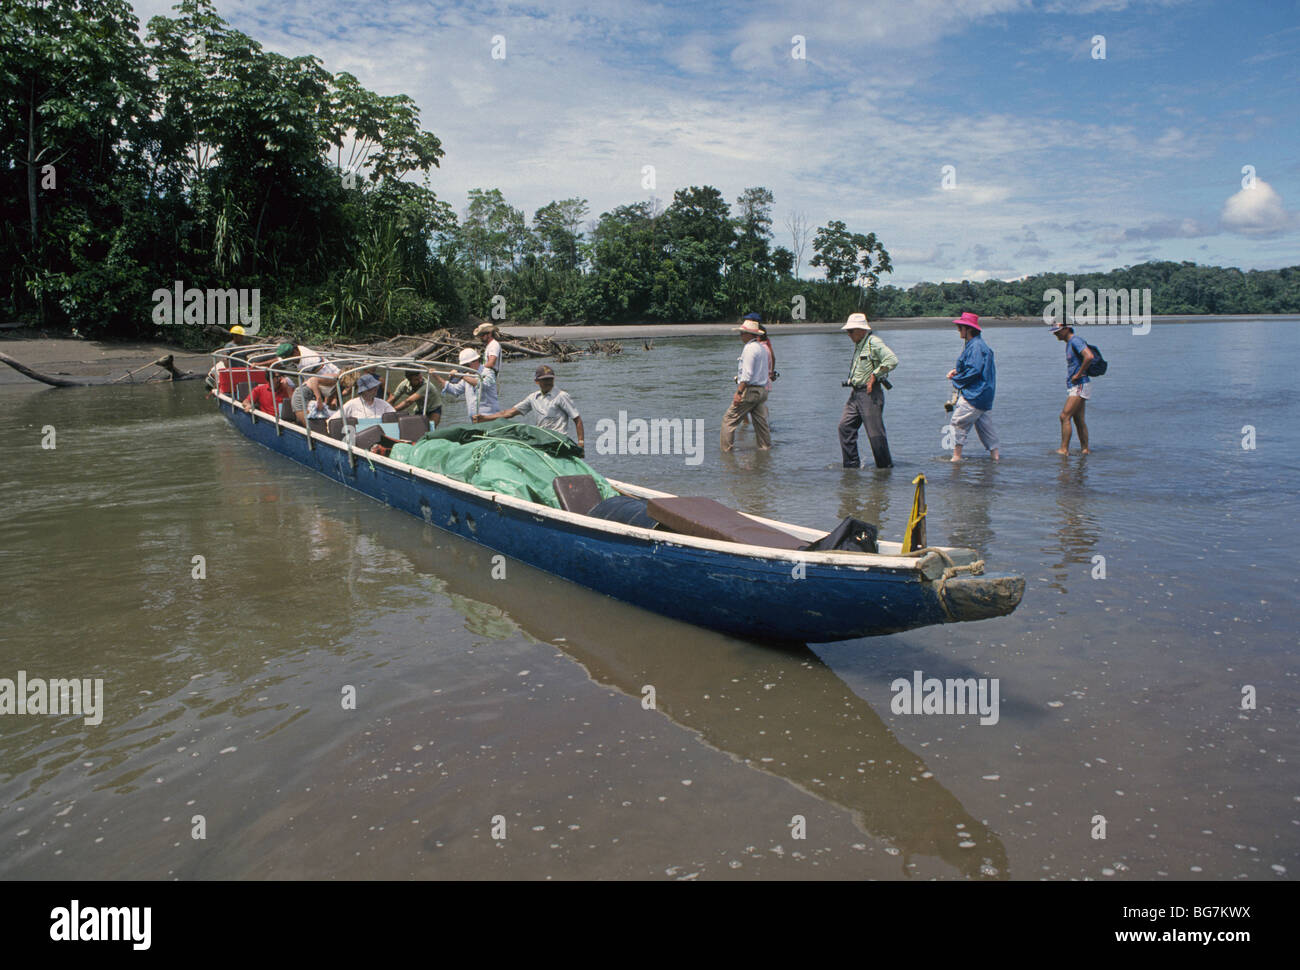 American adventurers on photo tour board a large dugout canoe for a trip down the Napo River in the Amazon Basin, - Stock Image